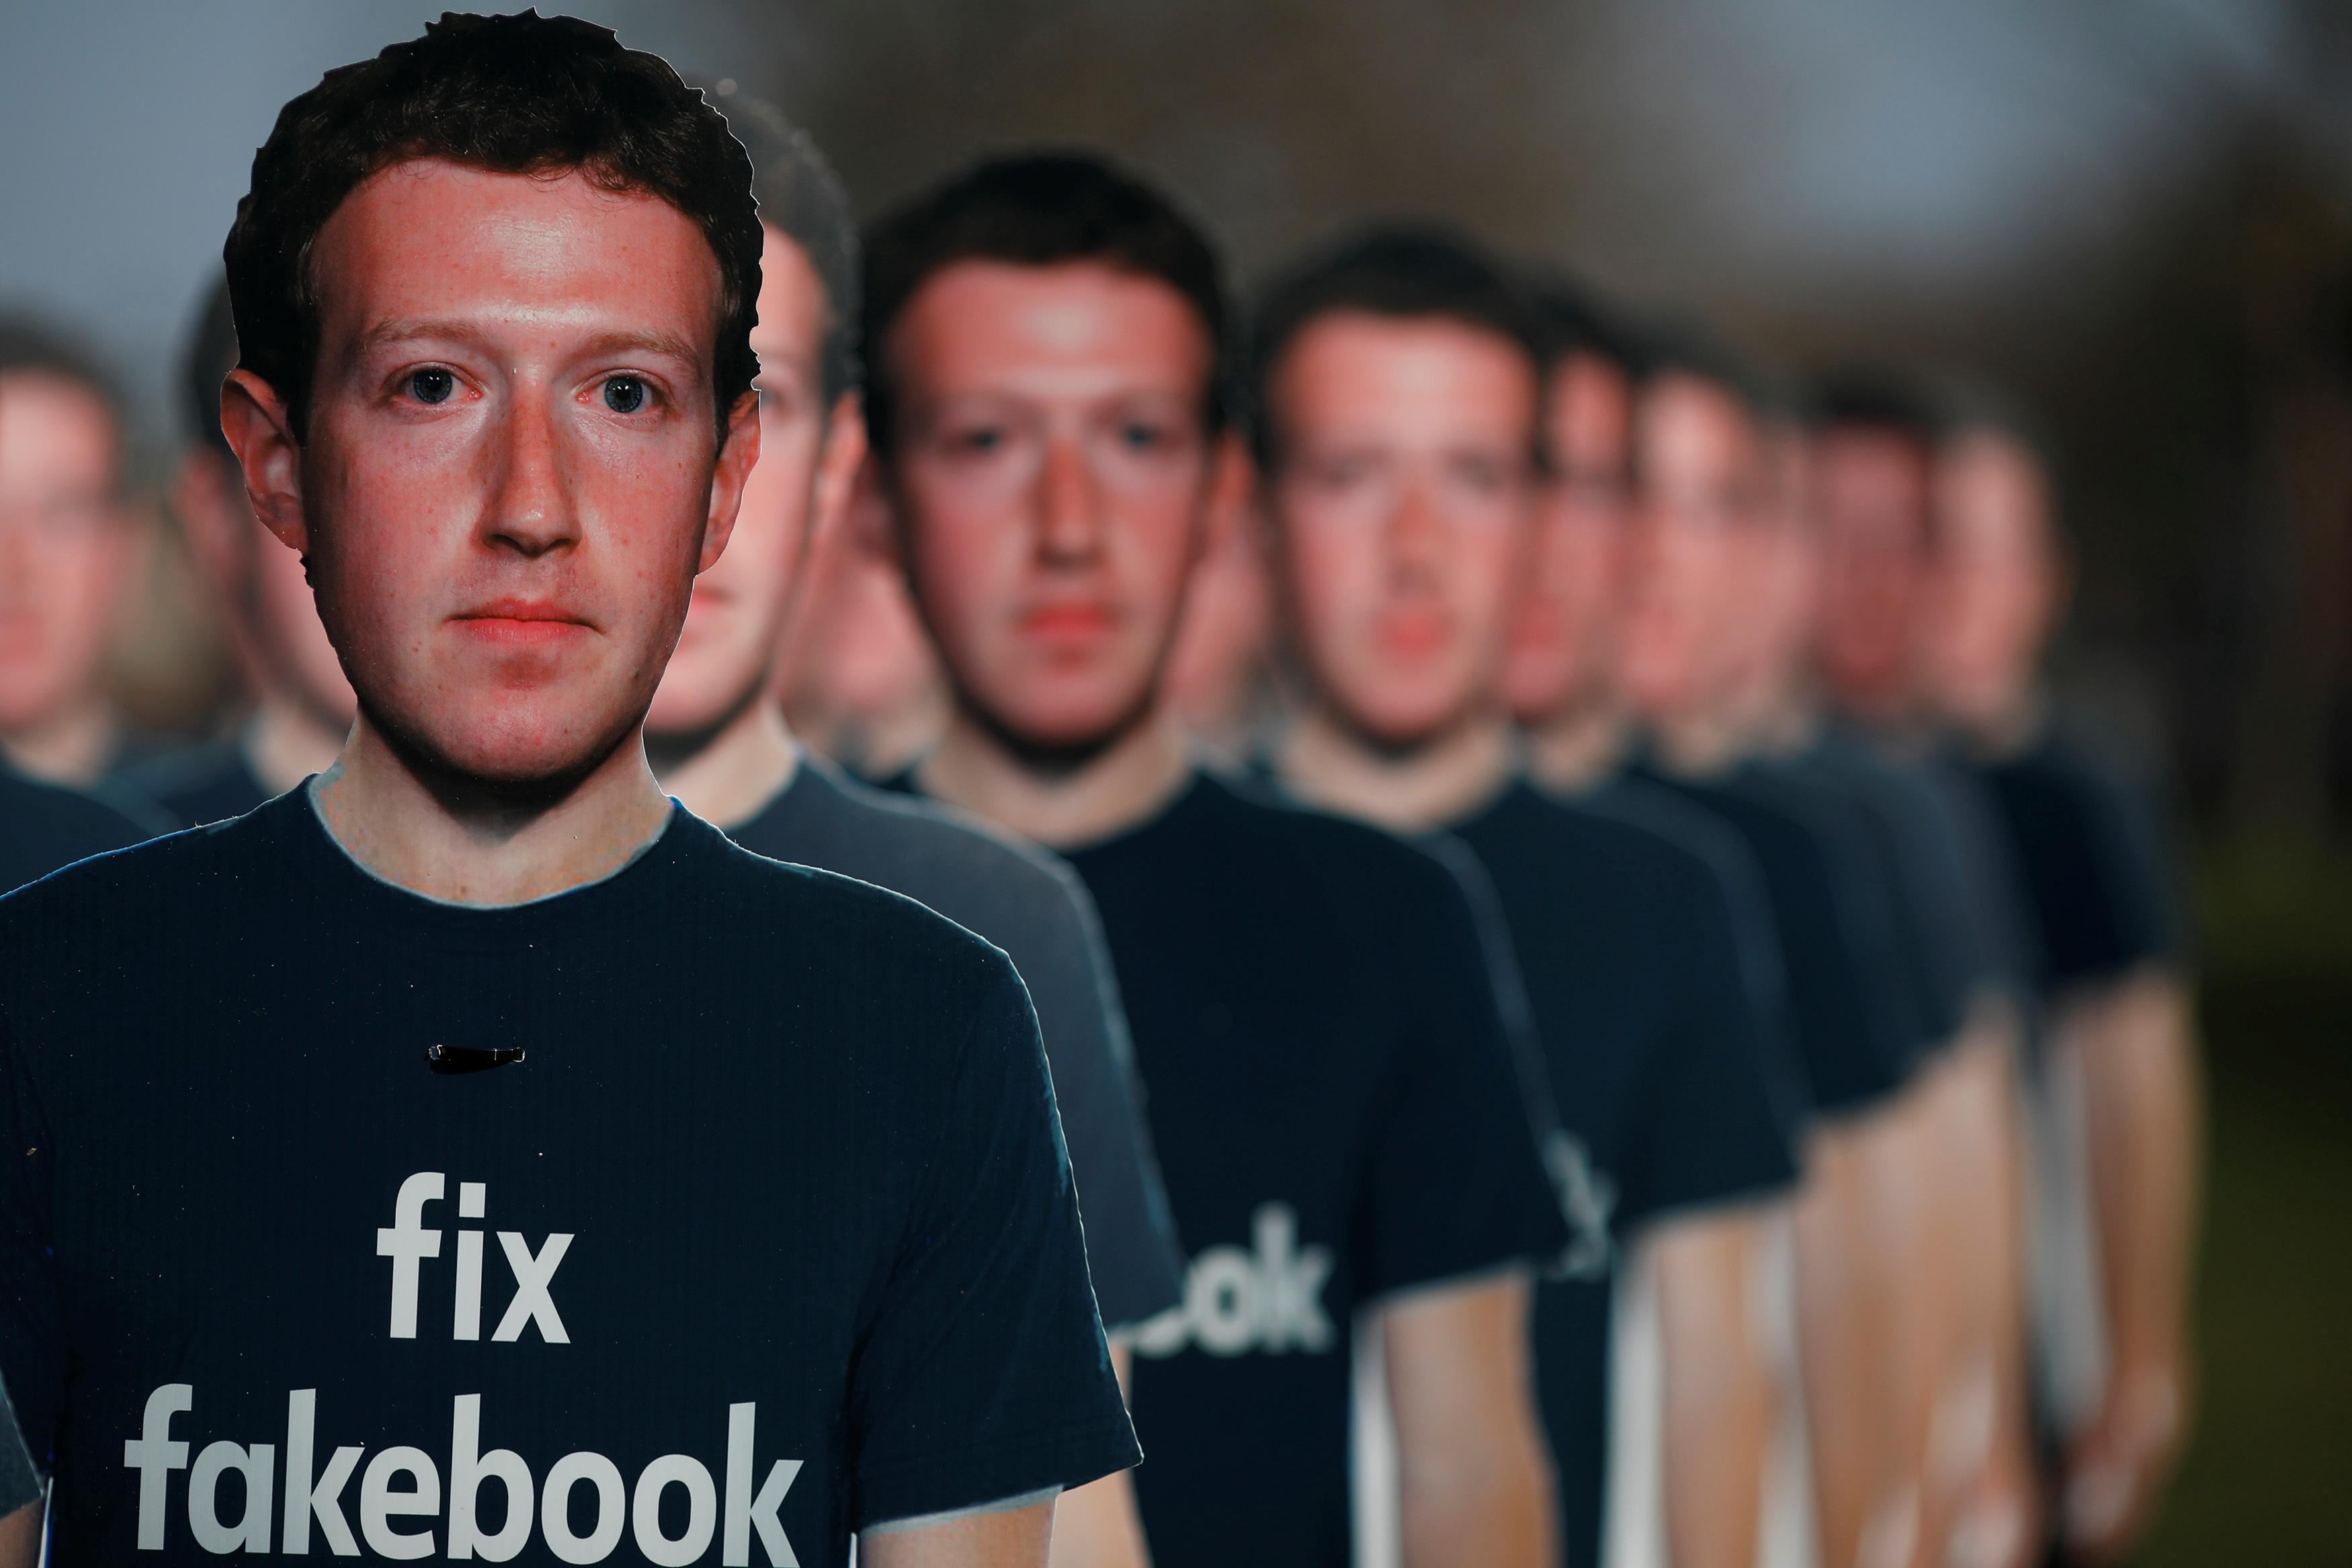 Dozens of cardboard cutouts of Facebook CEO Mark Zuckerberg are seen during an Avaaz.org protest outside the U.S. Capitol in Washington, U.S., April 10, 2018. Aaron P. Bernstein